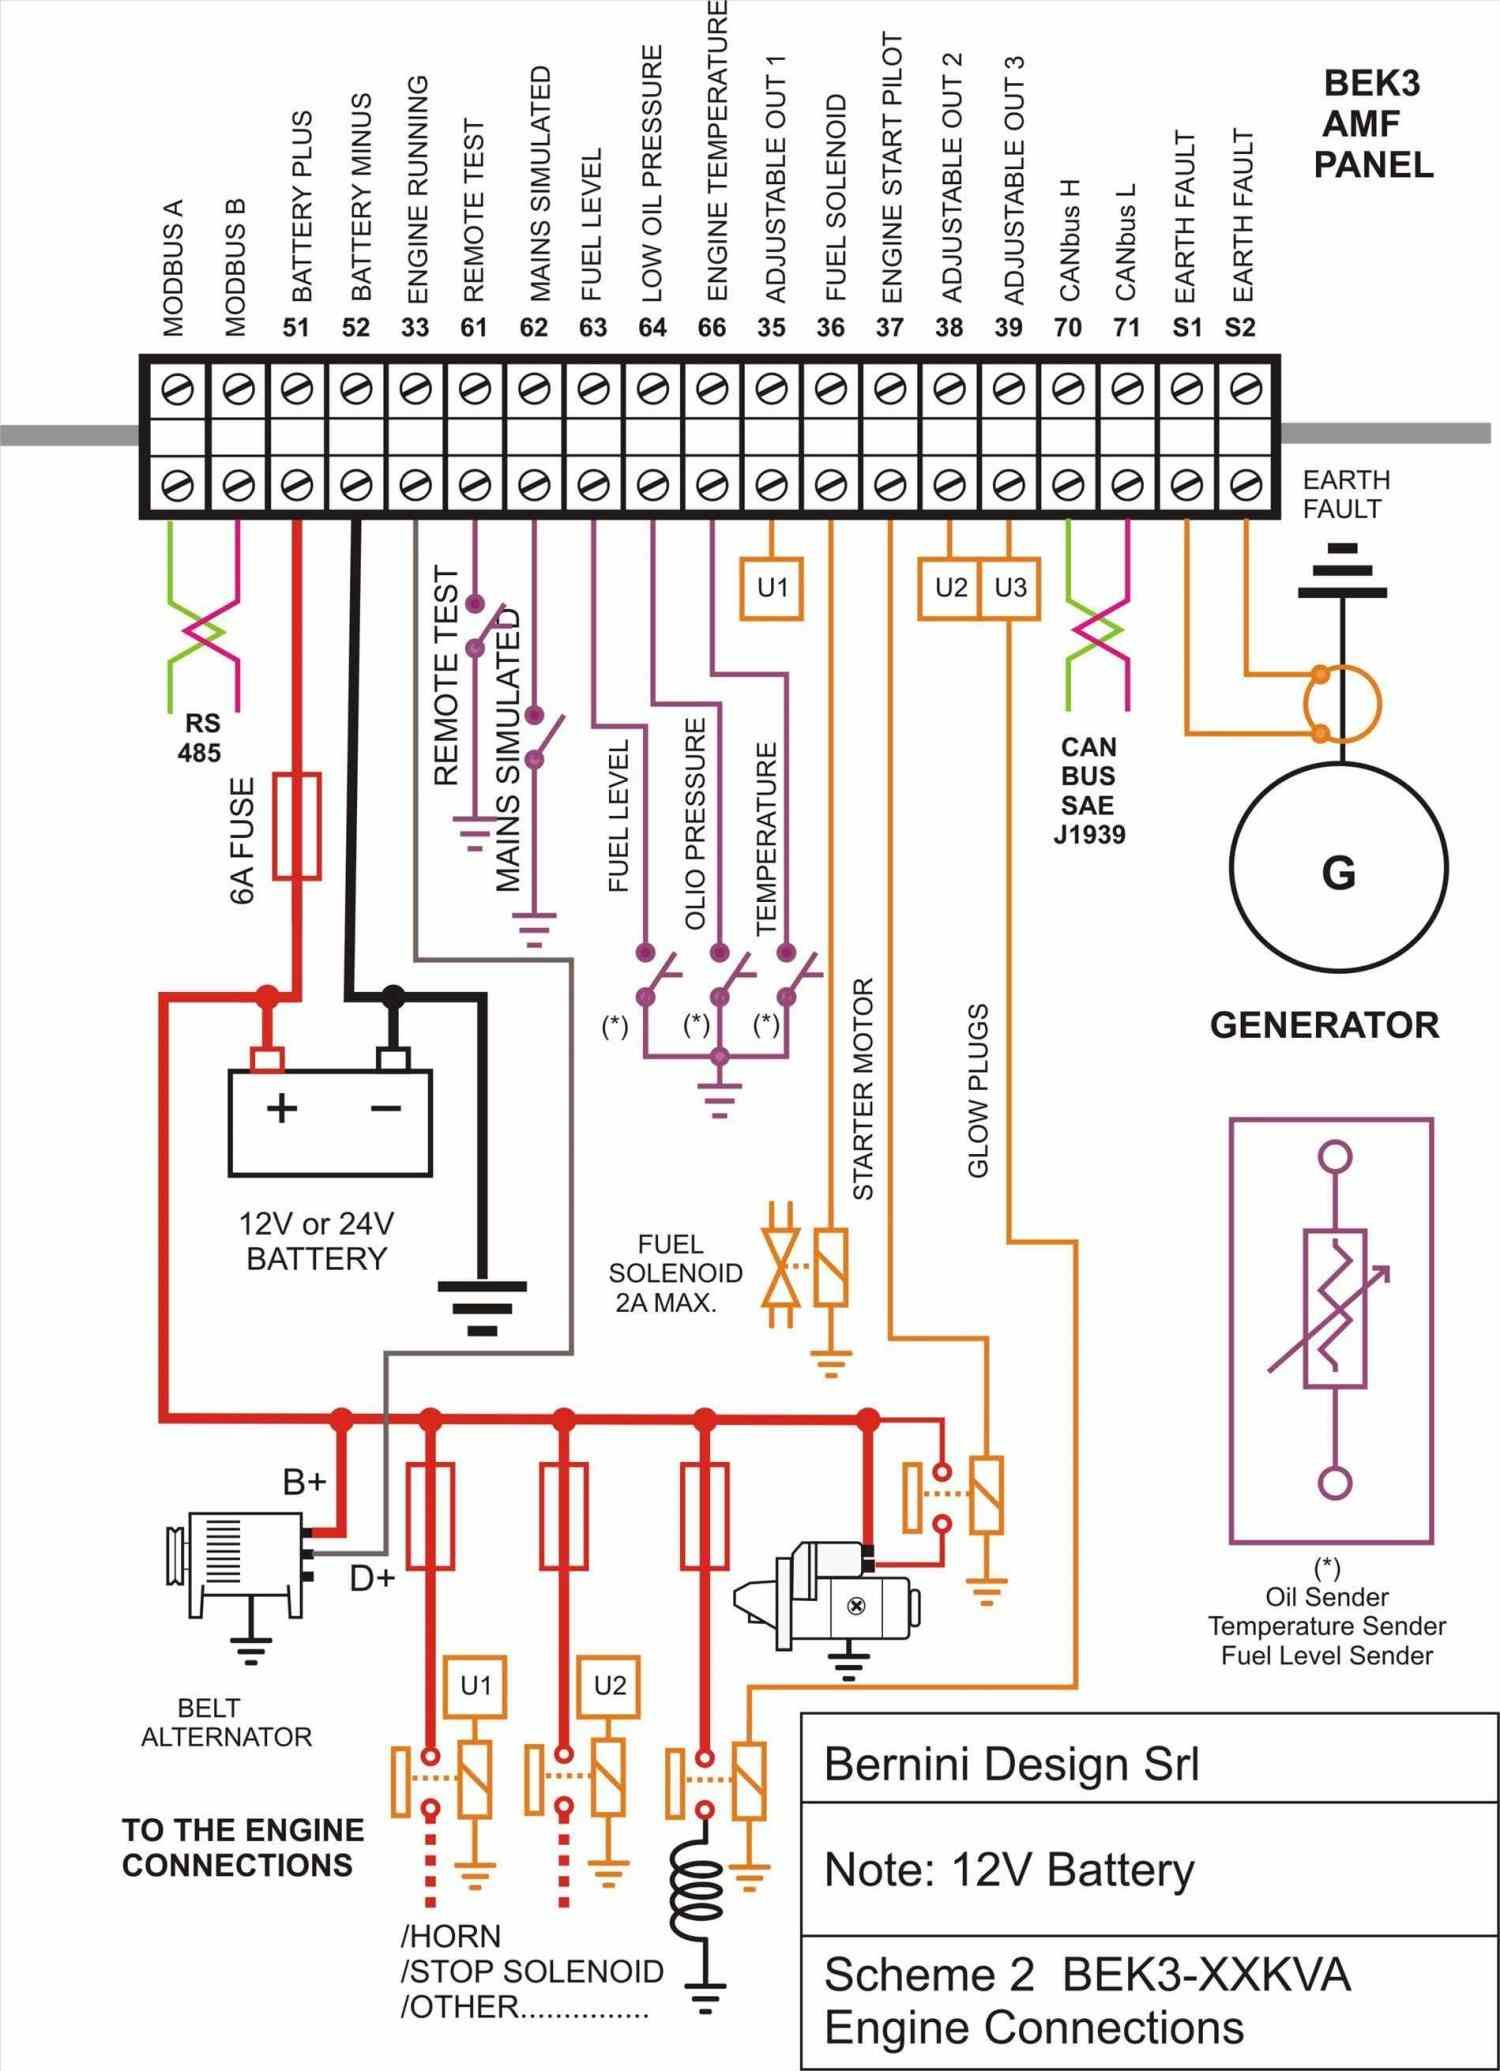 Heat Pump Wiring Diagram Schematic Bryant 517En030 | Wiring Library - Bryant 215B Wiring Diagram Nest Thermostat